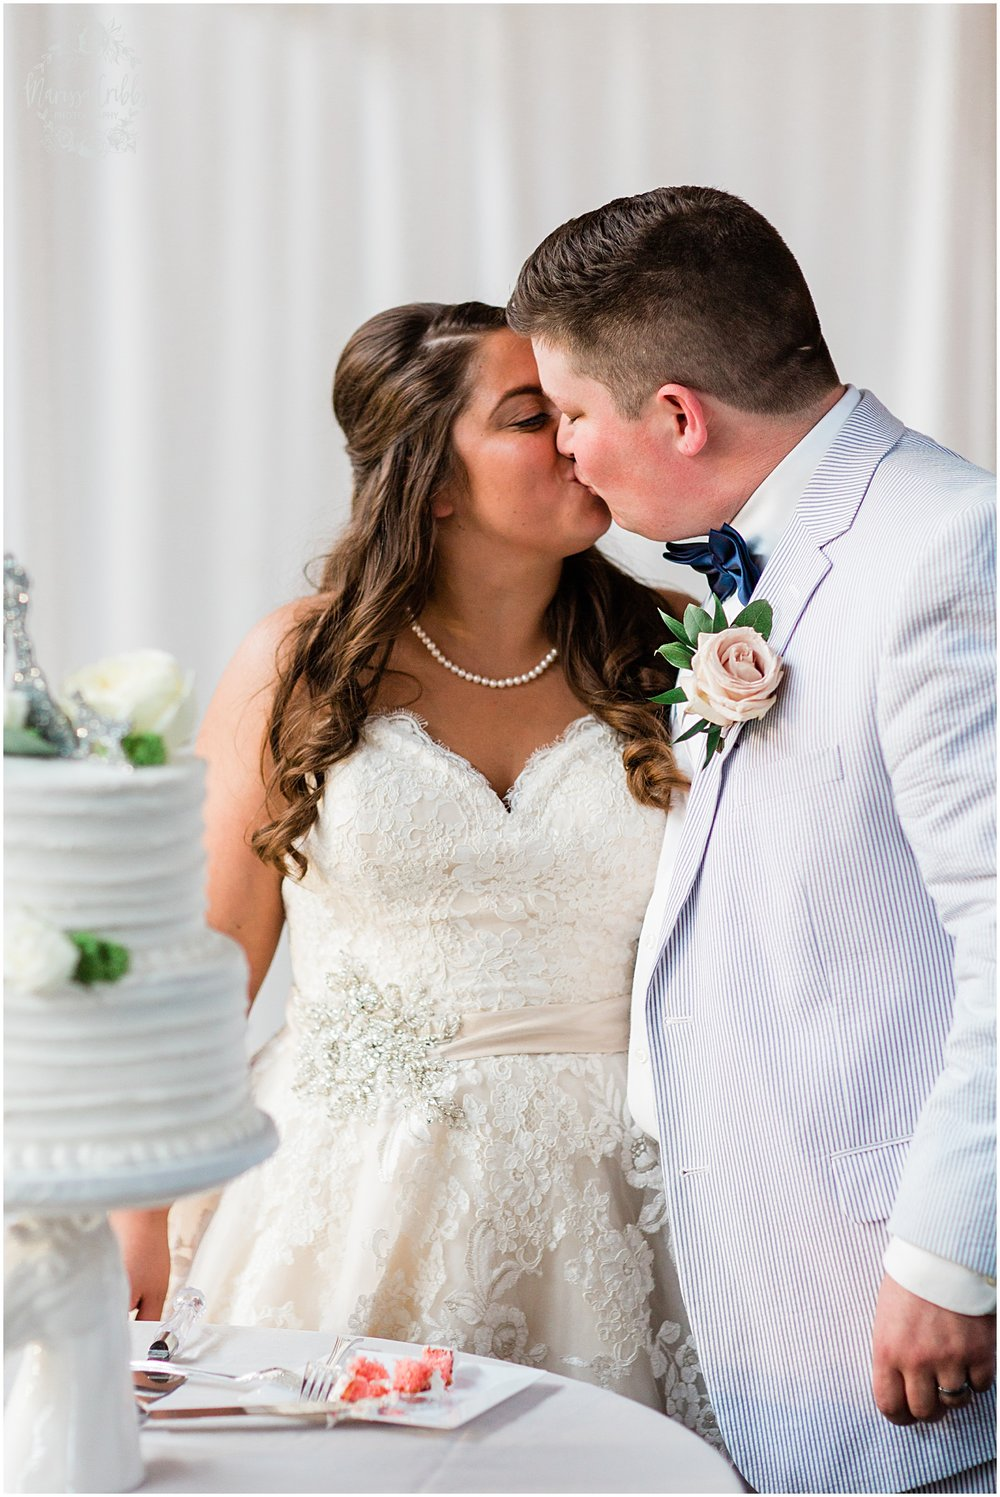 ANDREA & MICHAEL WEDDING | HICKORY CREEK RANCH | MARISSA CRIBBS PHOTOGRAPHY_4903.jpg